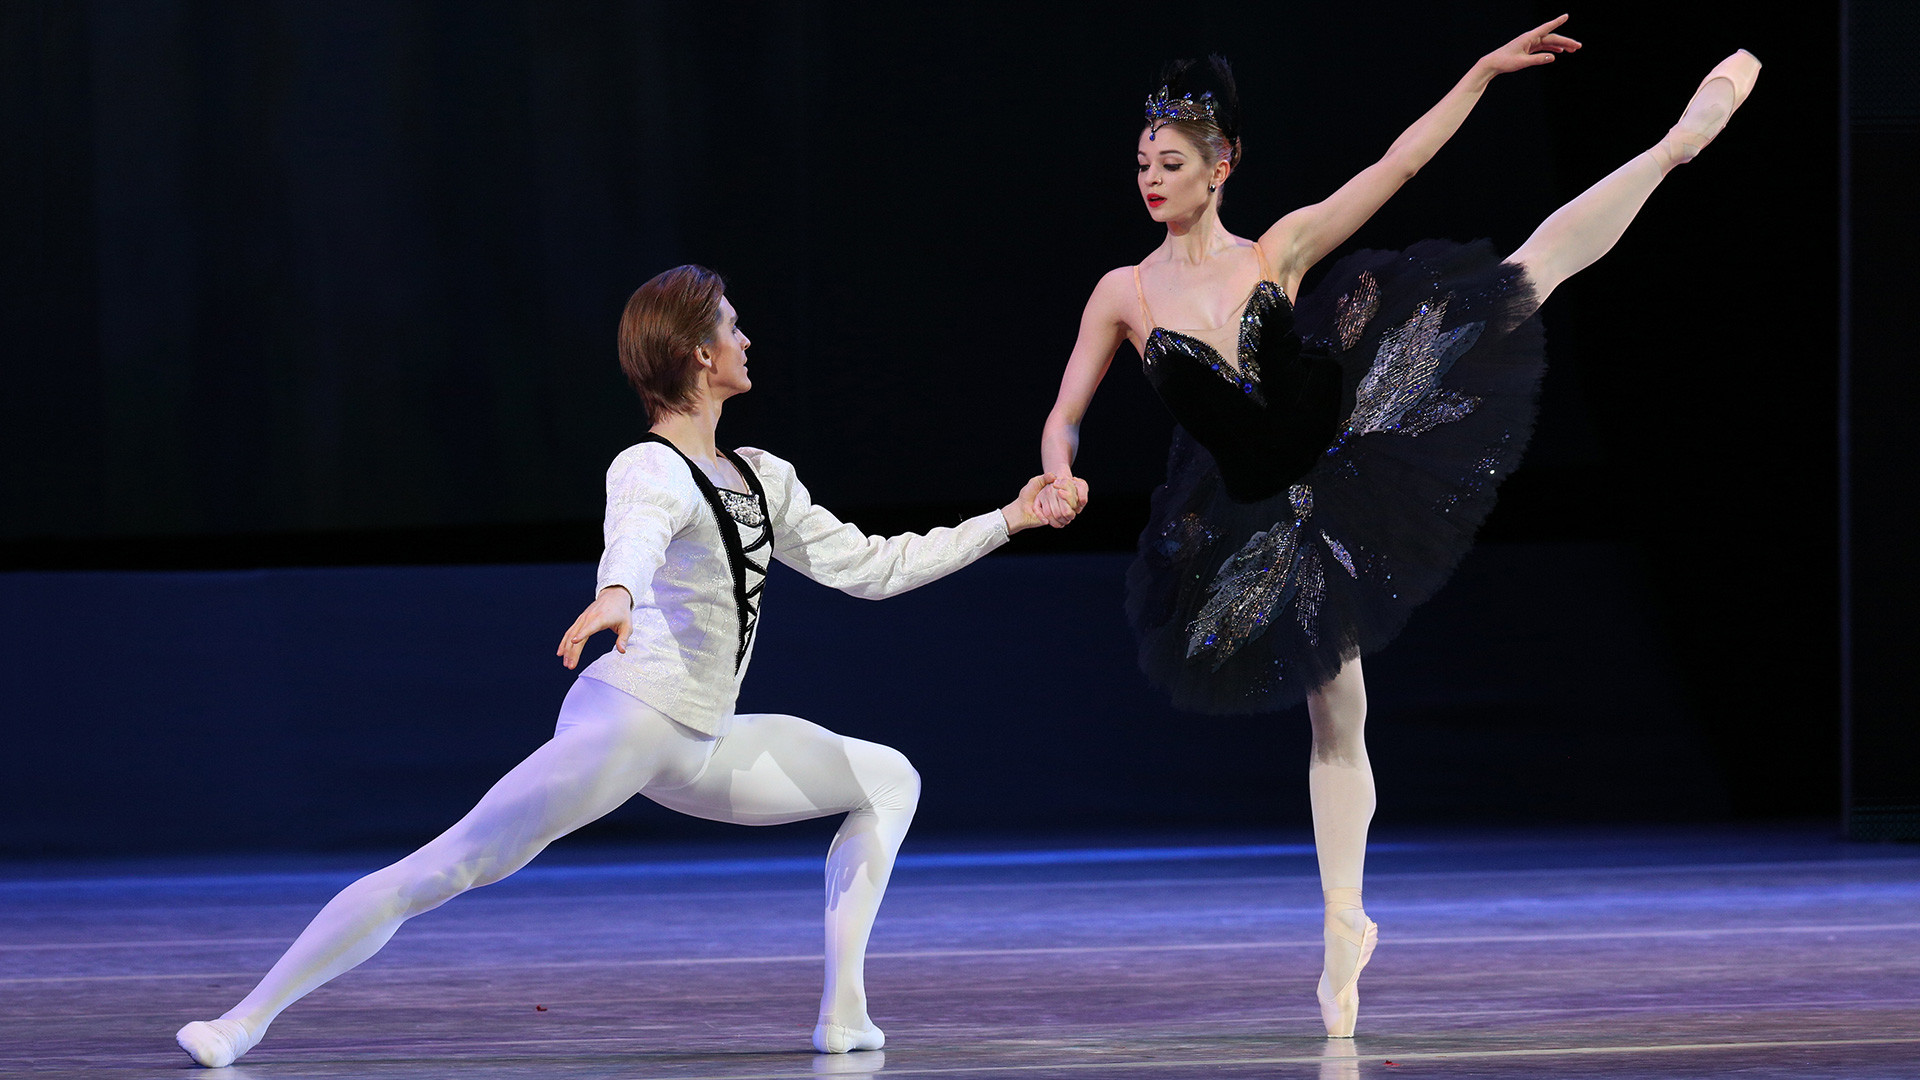 Angelina Vorontsova and Denis Rodkin performing a piece from Swan Lake on the stage of The State Kremlin Palace.